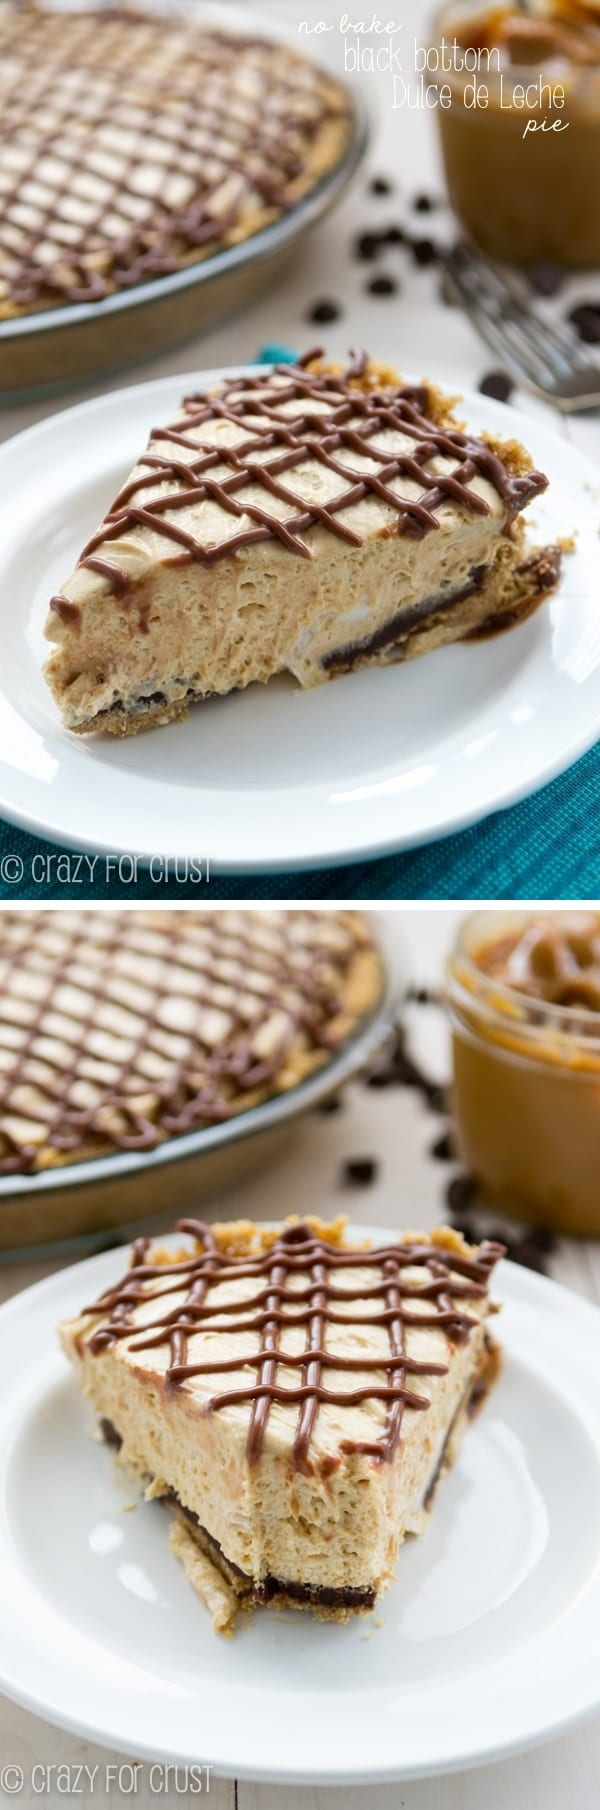 No-Bake Black Bottom Dulce de Leche Pie - the BEST summer dessert!